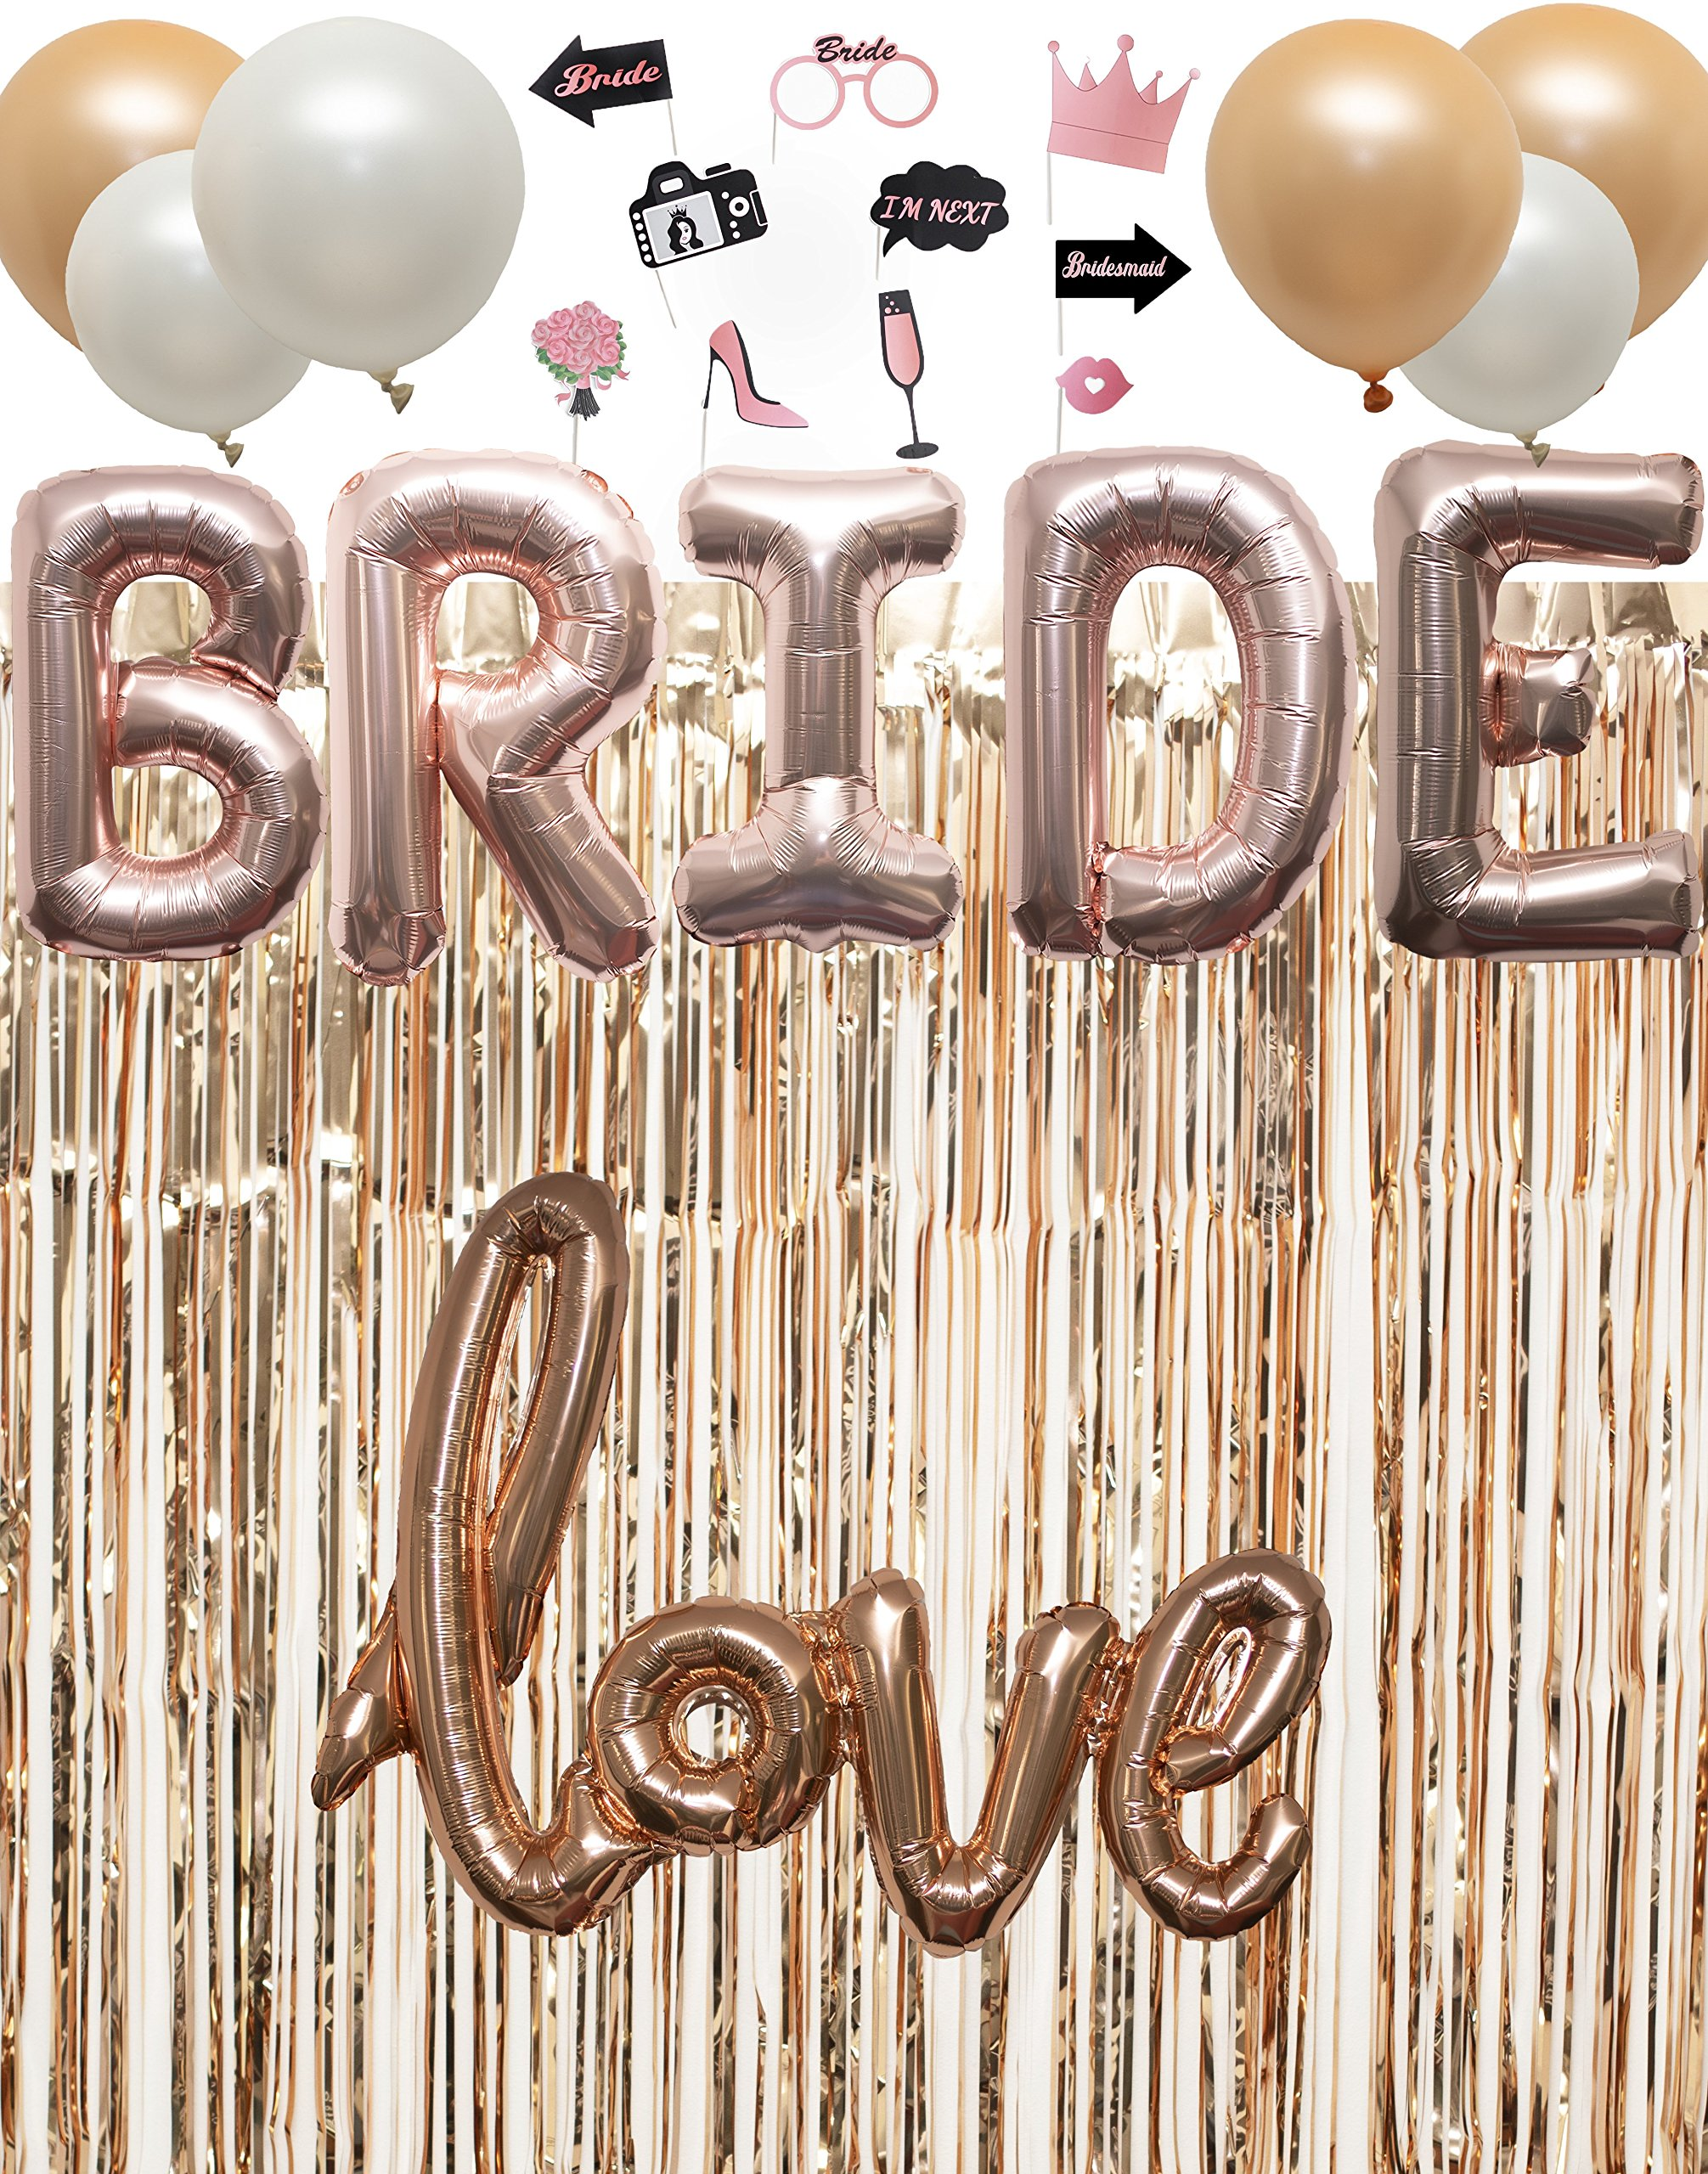 Rose Gold Bachelorette Party Bridal Shower Decorations Kit with Photo Booth Props (23 Pieces)